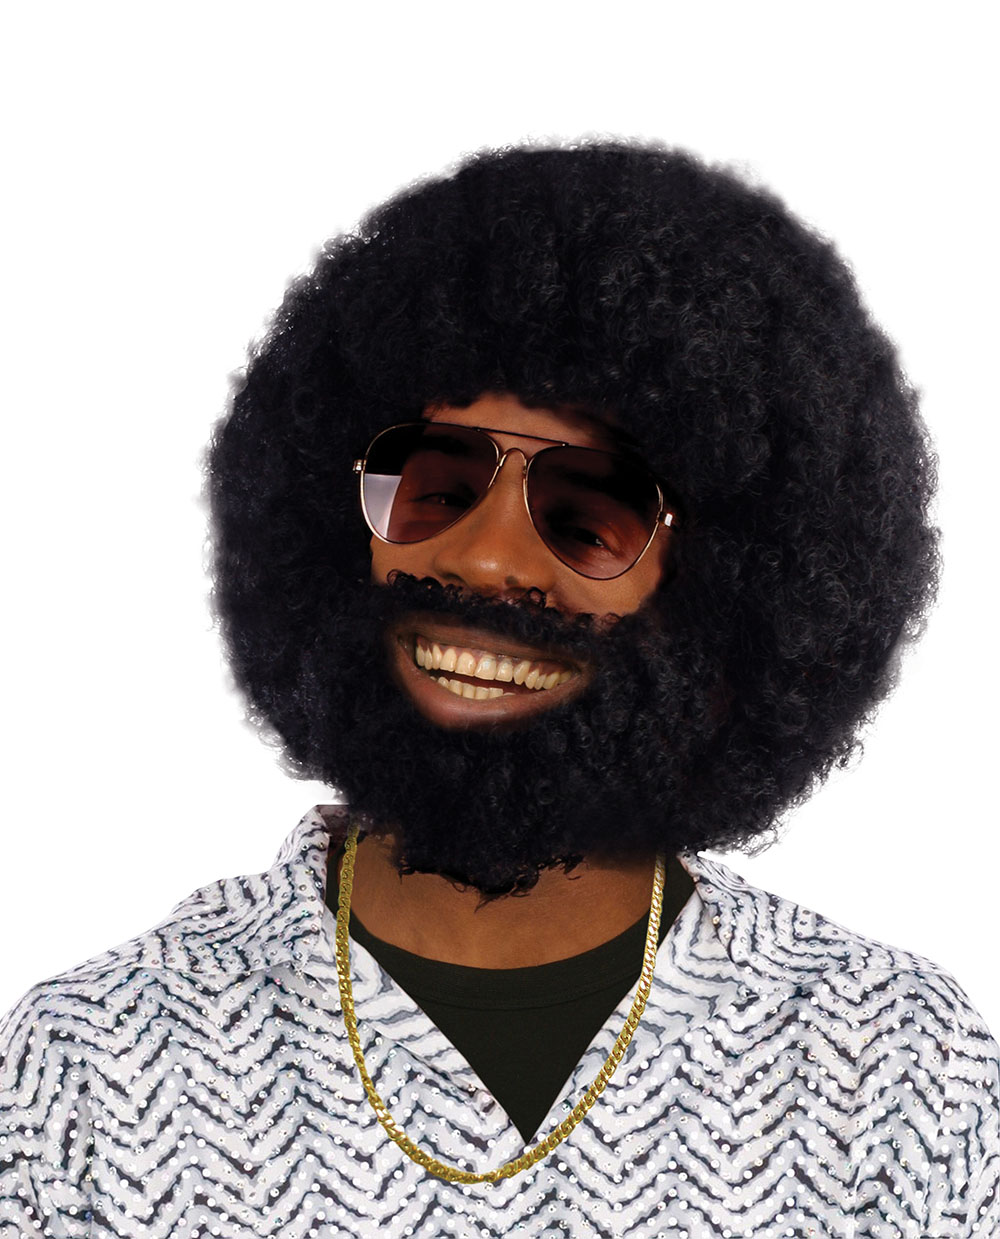 70s_Afro_and_Facial_Hair